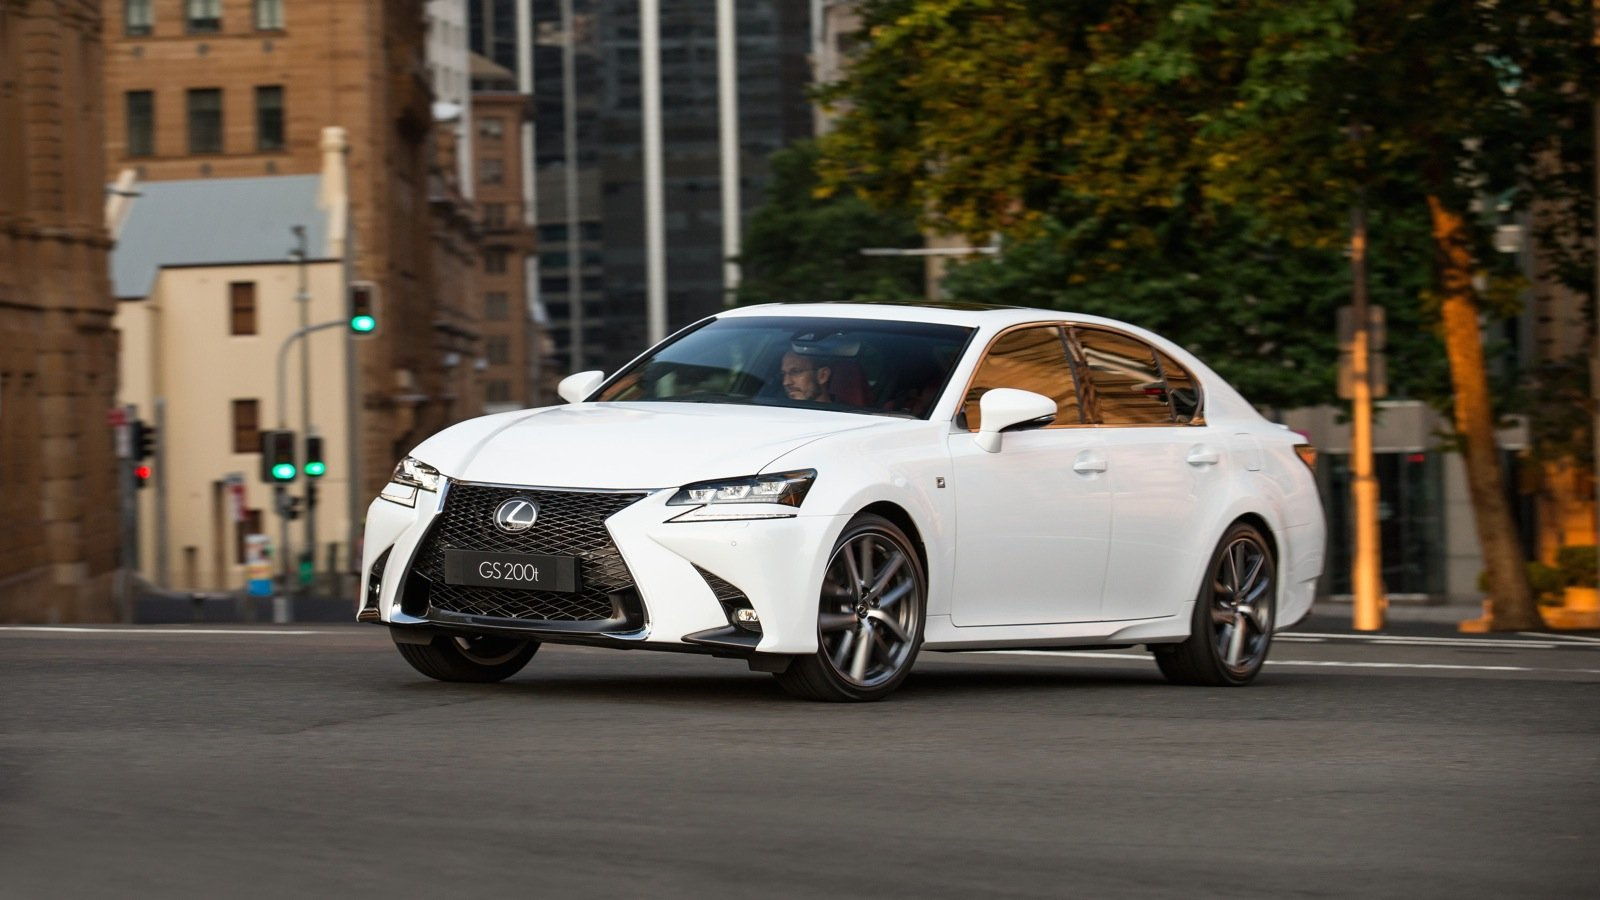 2016 Lexus GS200t Review | CarAdvice